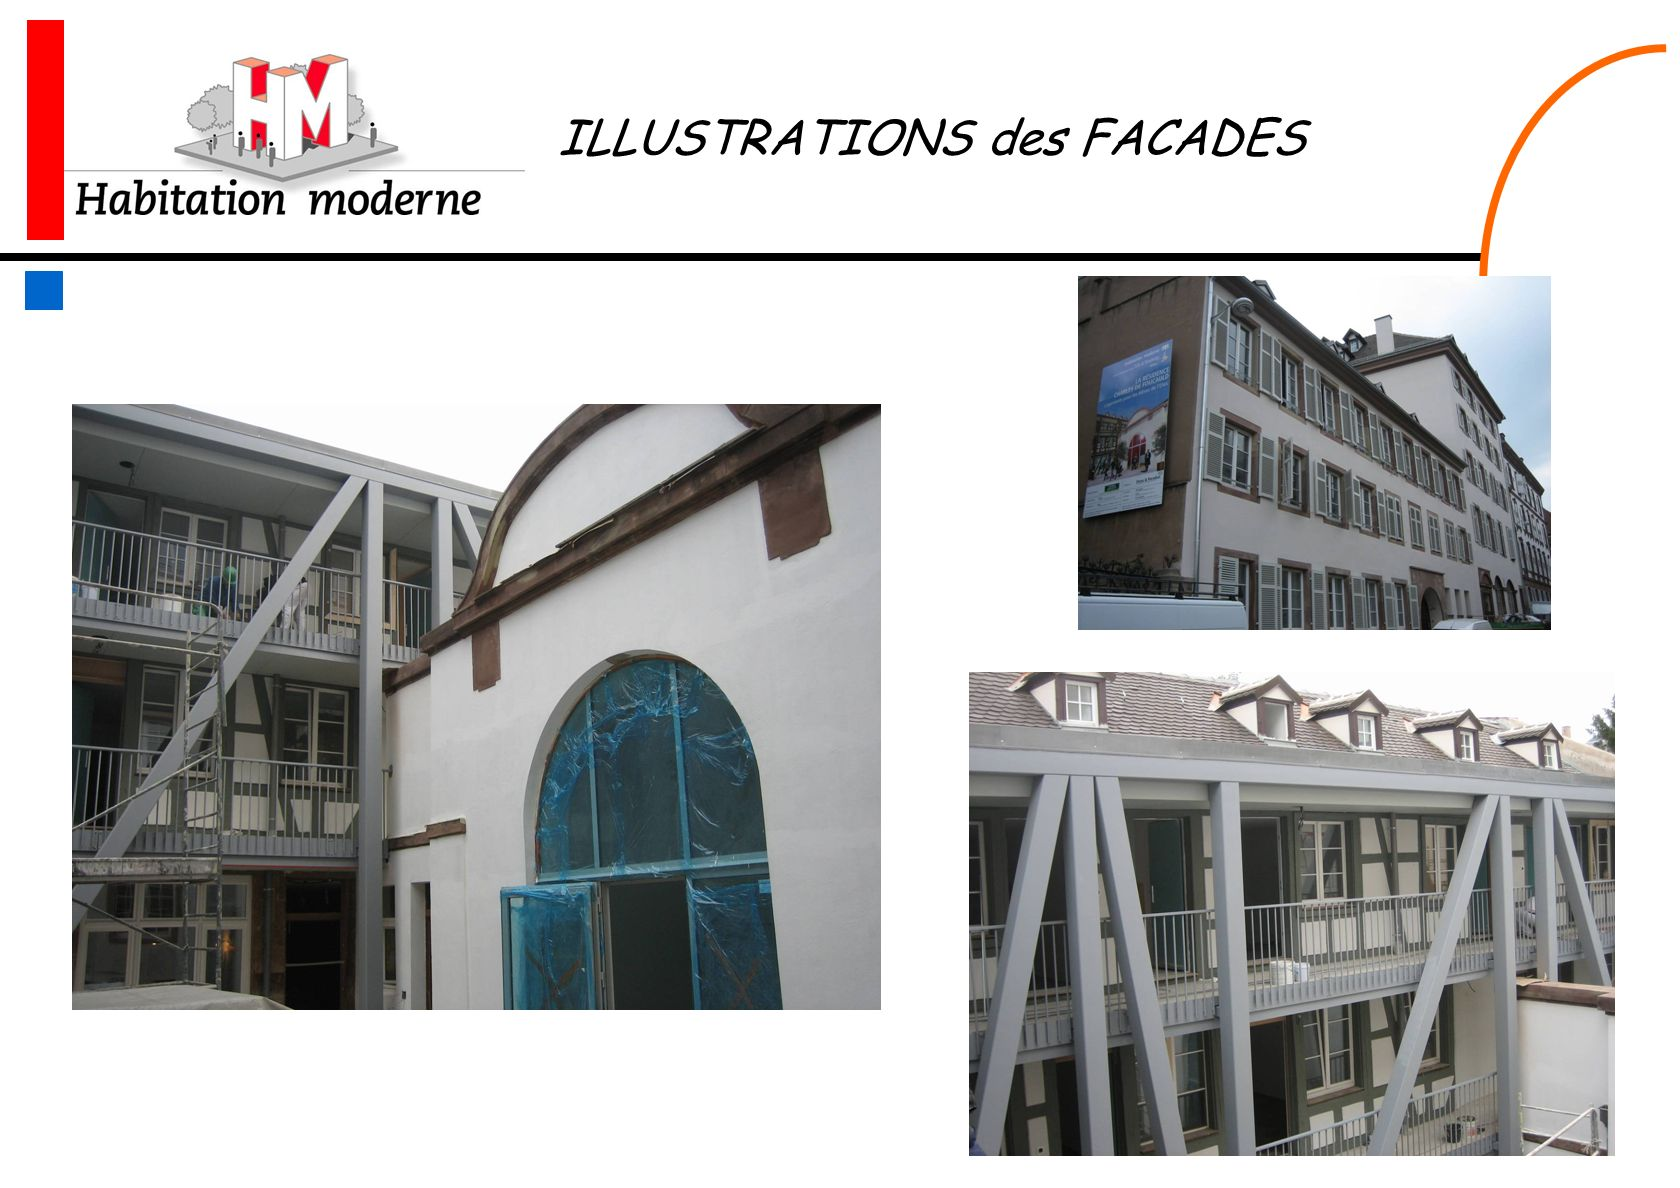 ILLUSTRATIONS des FACADES